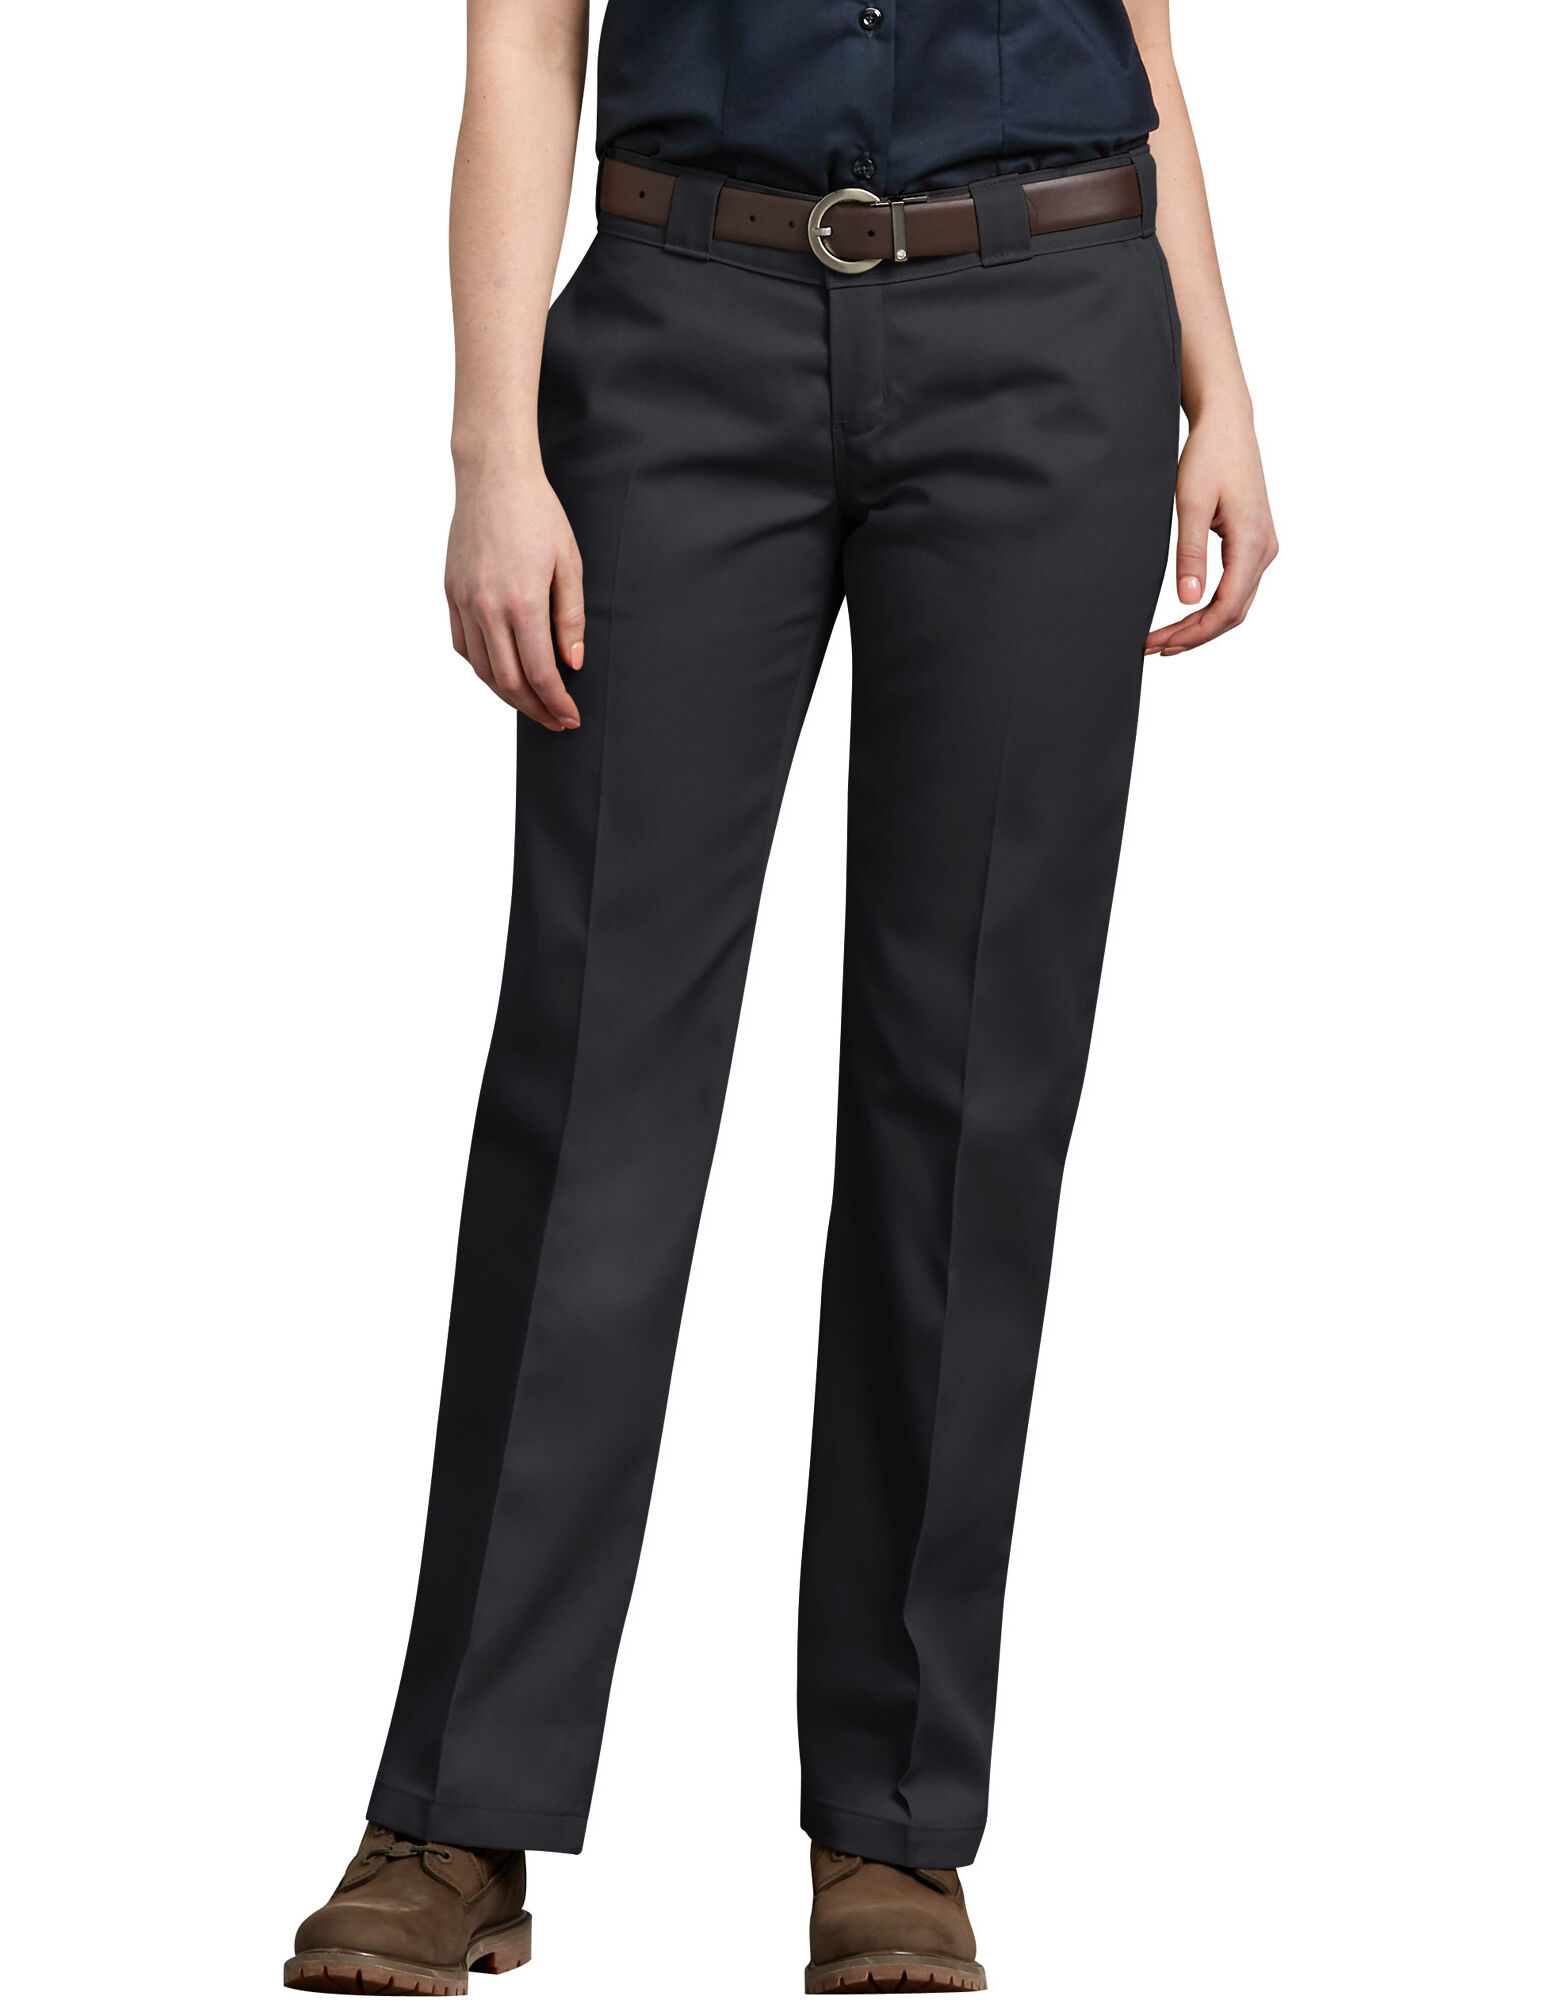 Discover name brand women's shorts and capris at great prices from Stein Mart. From stylish women's shorts brands like Peck and Peck to fashionable capri and ankle pants from Counterparts, we have the styles and brands you love at prices you'll adore.